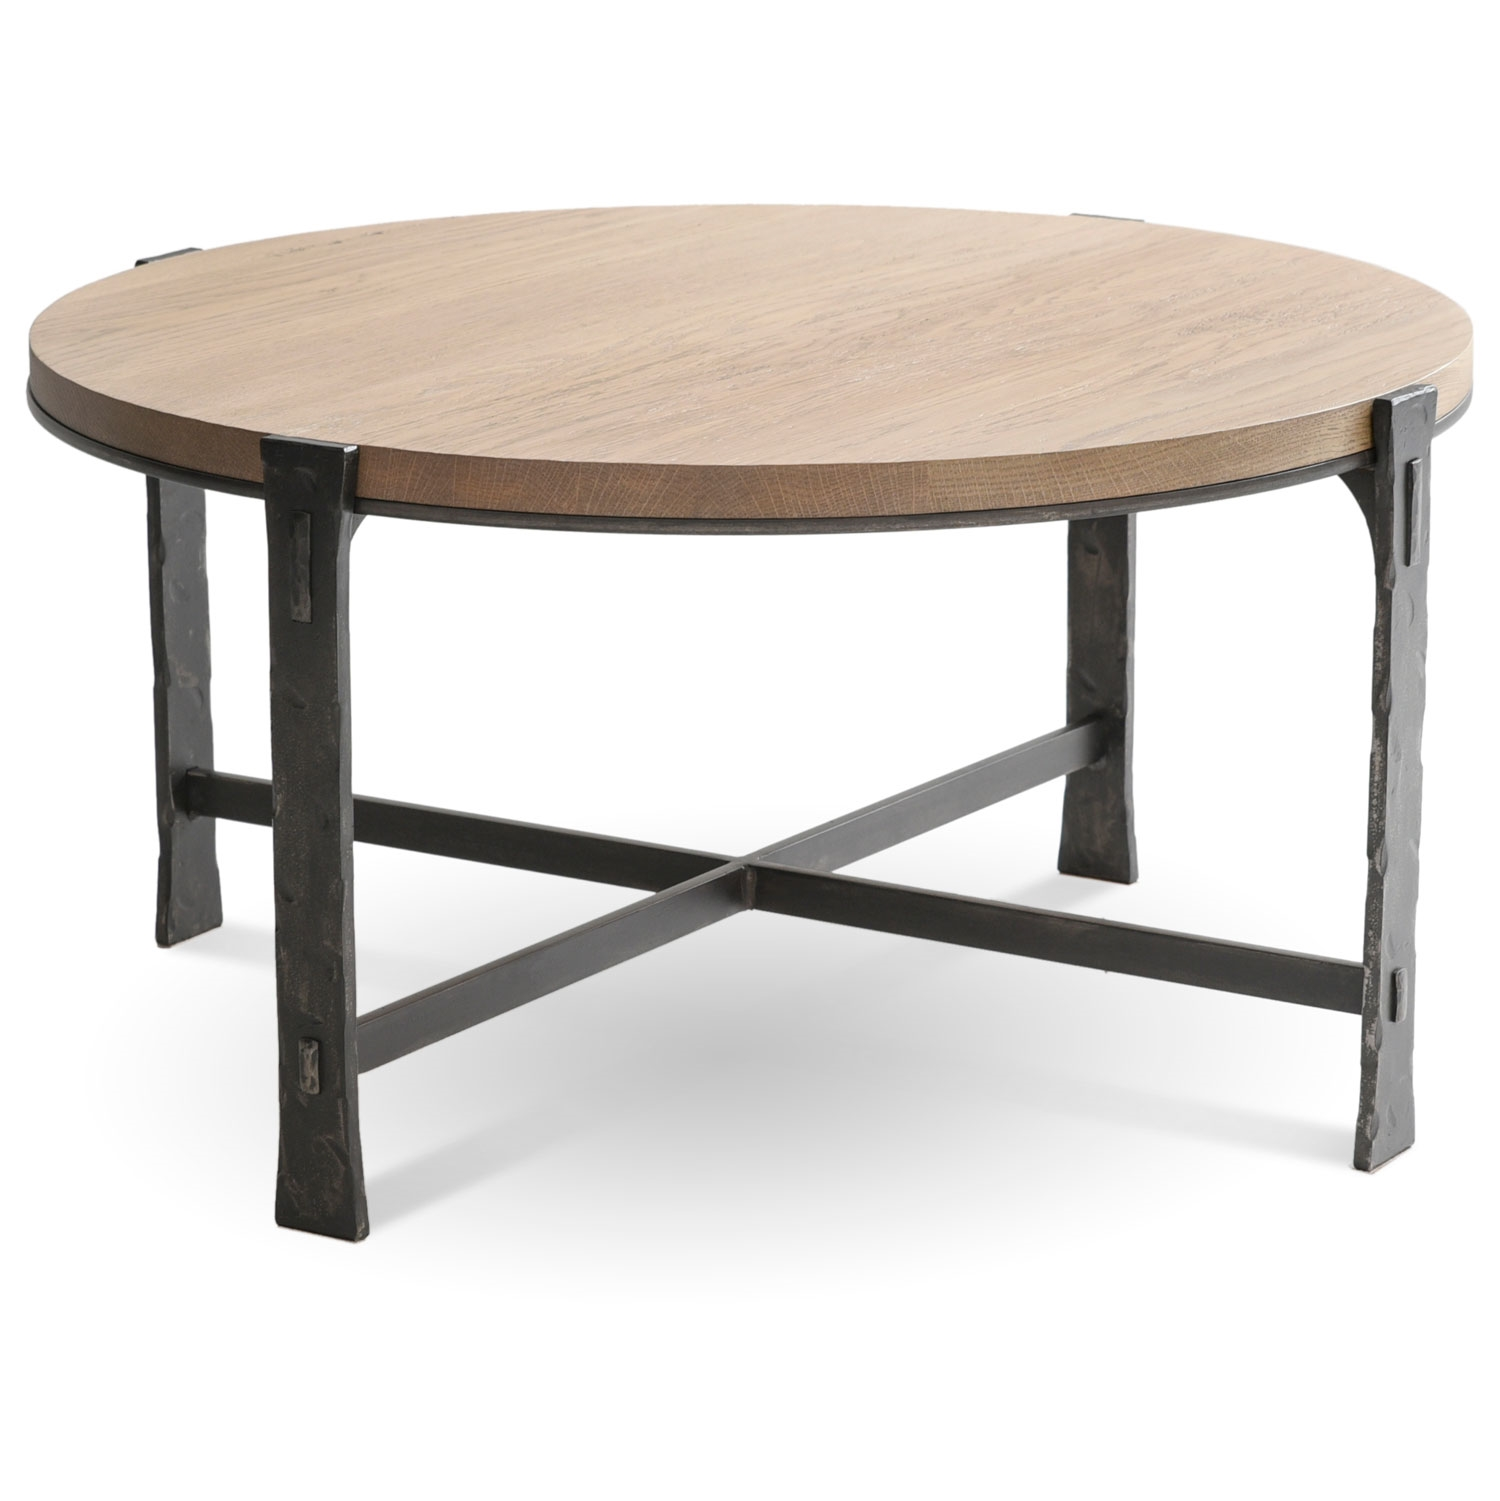 Woodland 36quot Round Cocktail Table Hand forged Iron Table  : TWI CF 6272 2 from www.timelesswroughtiron.com size 1500 x 1501 jpeg 338kB